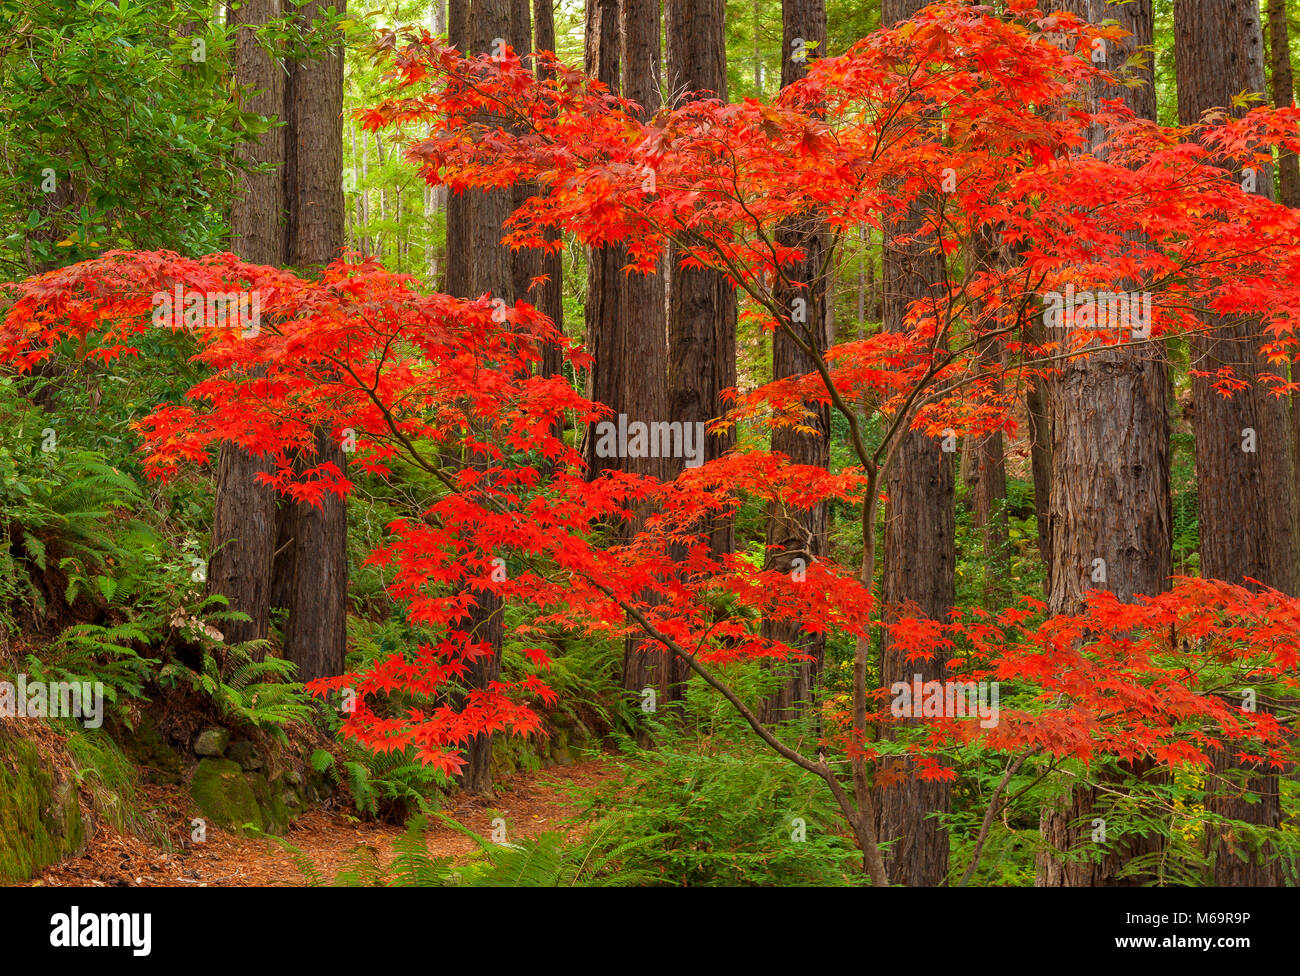 Japanese Maple, Redwoods, Fern Canyon Garden, Mill Valley, California - Stock Image